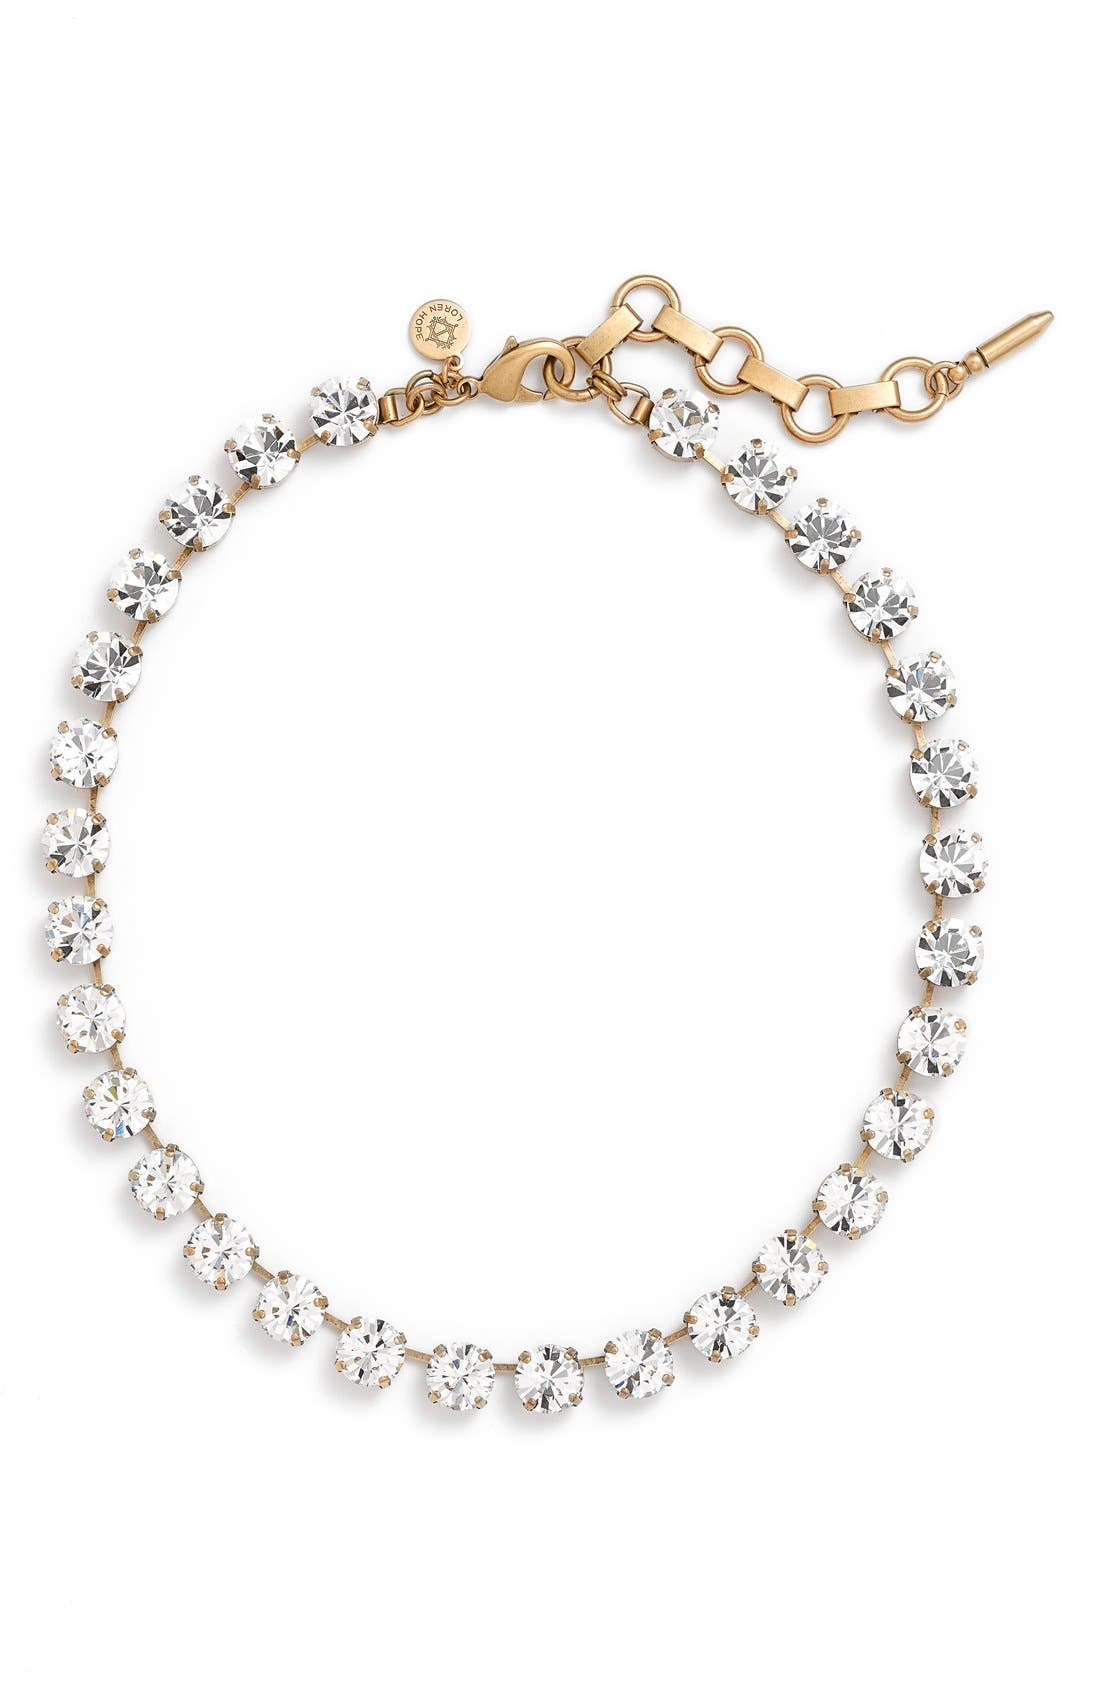 Loren Hope 'Kaylee' Collar Necklace